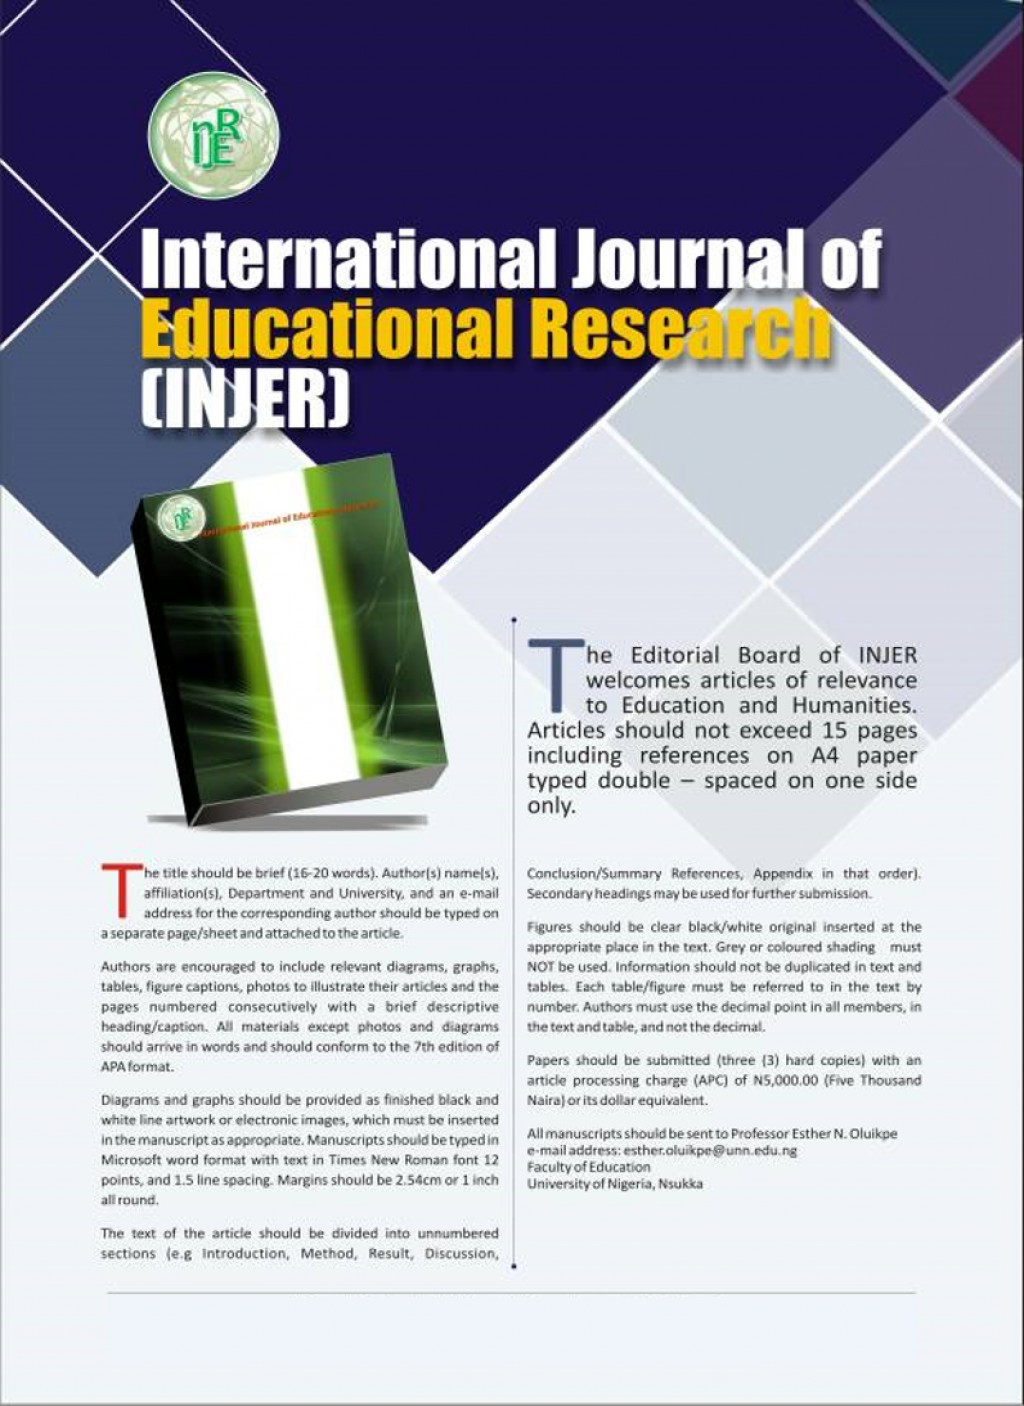 013 Injer Flyer X Educational Researchs Stupendous Research Papers Education Topics Past Administration Large